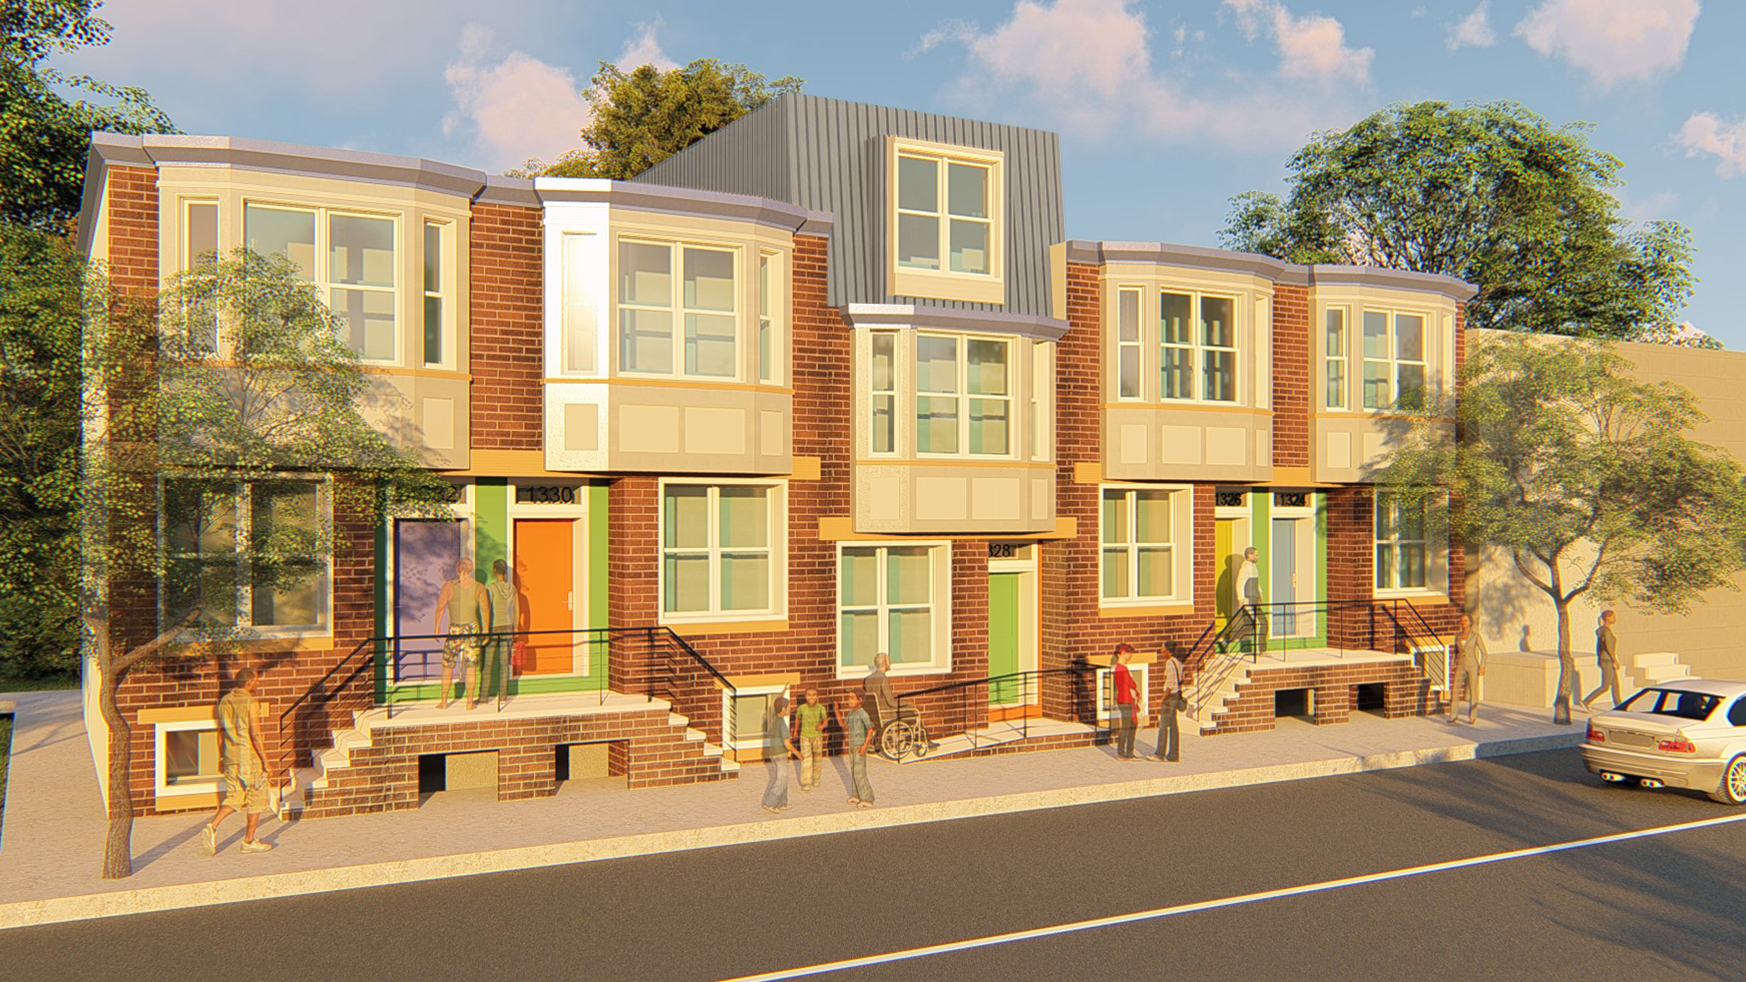 Affordable forever? A new kind of housing comes to South Philadelphia